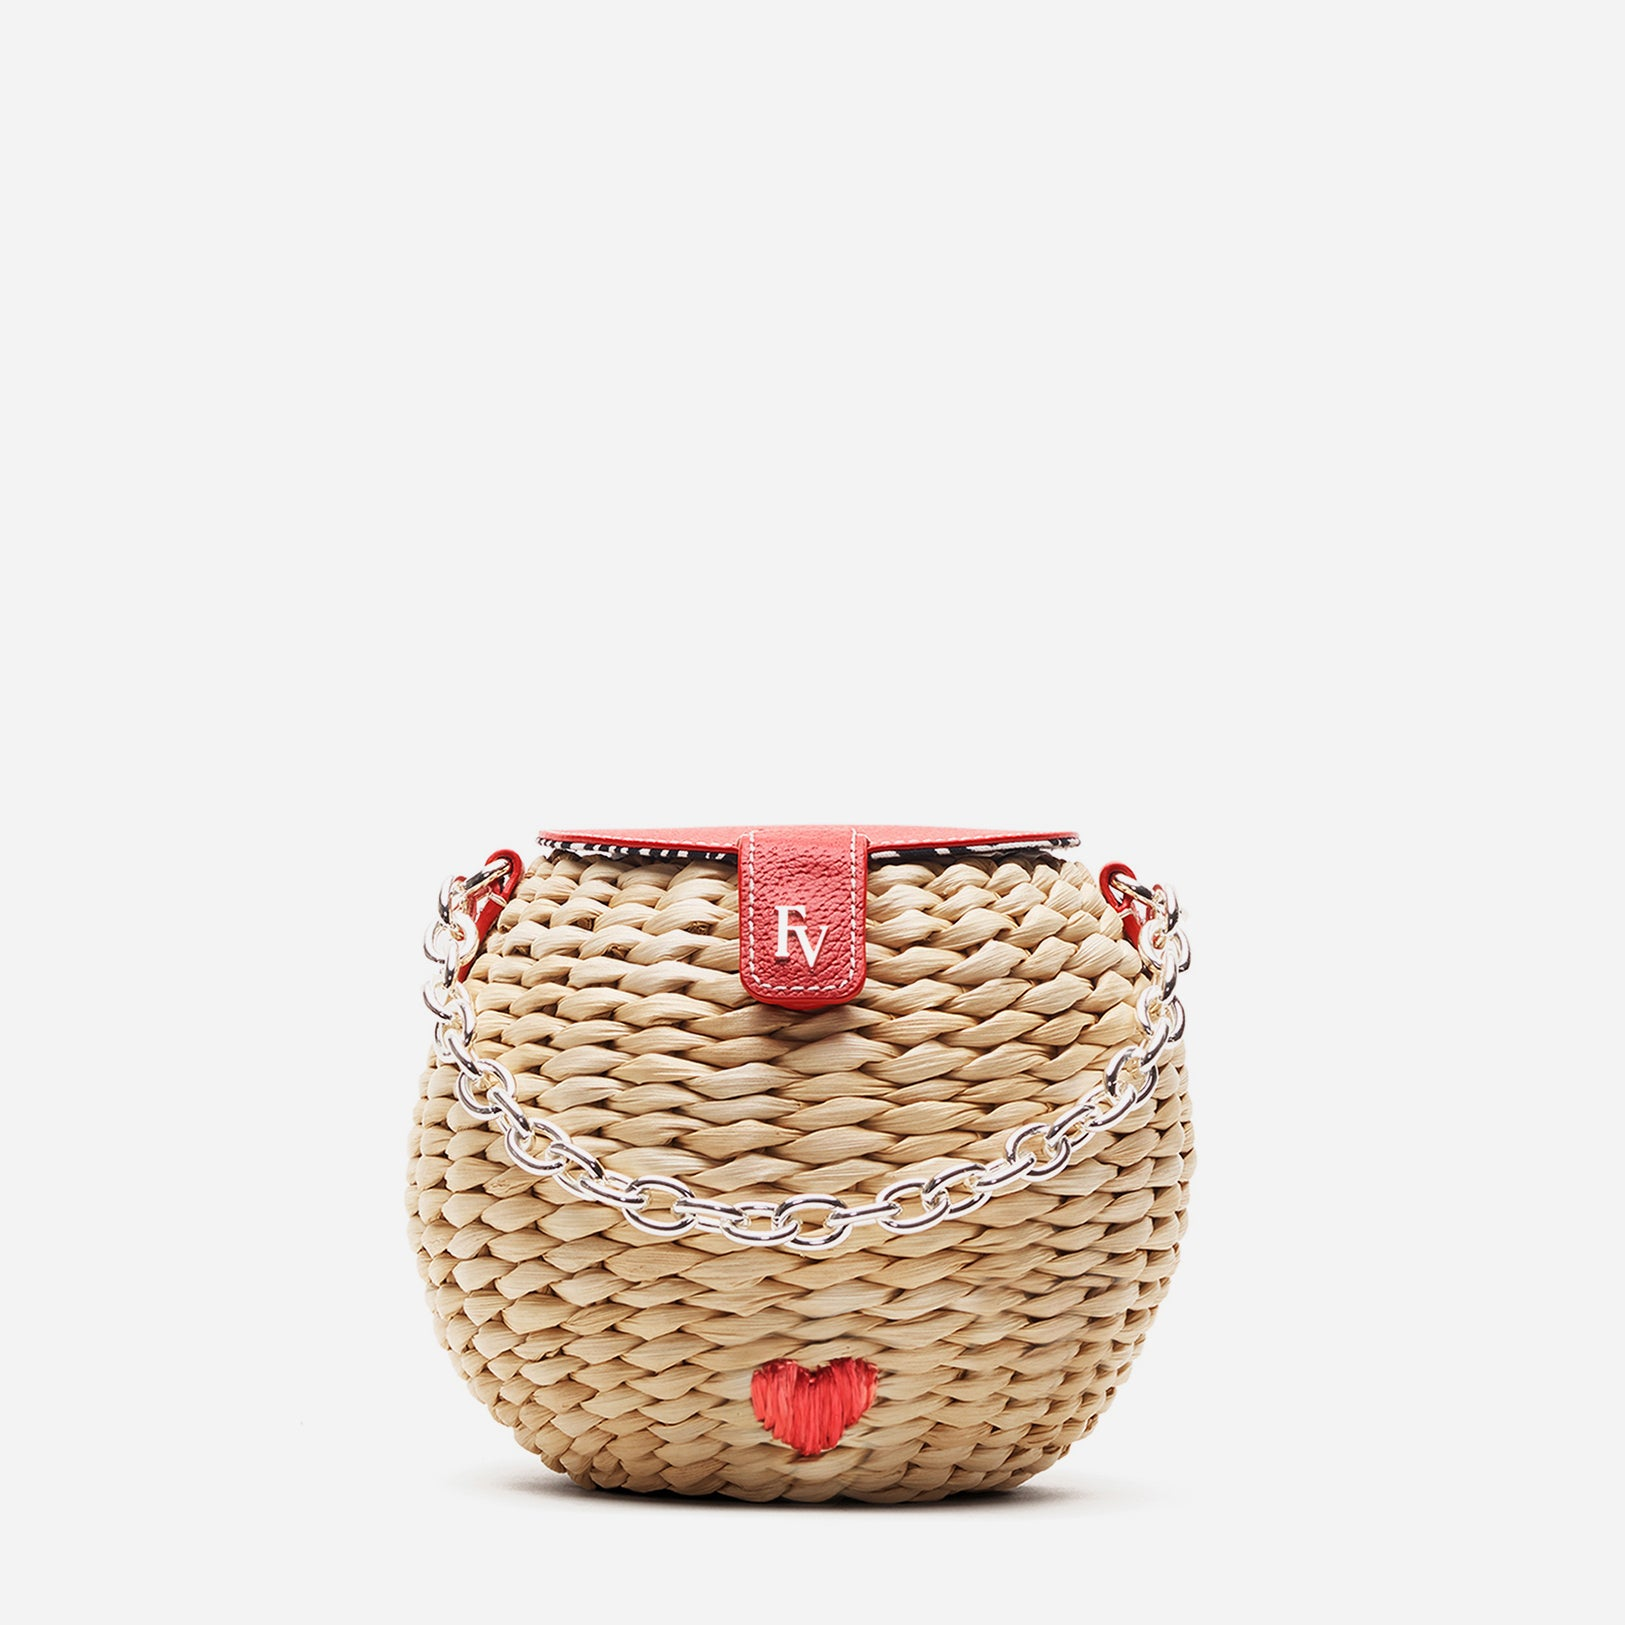 Honeypot Basket Limited Edition Heart